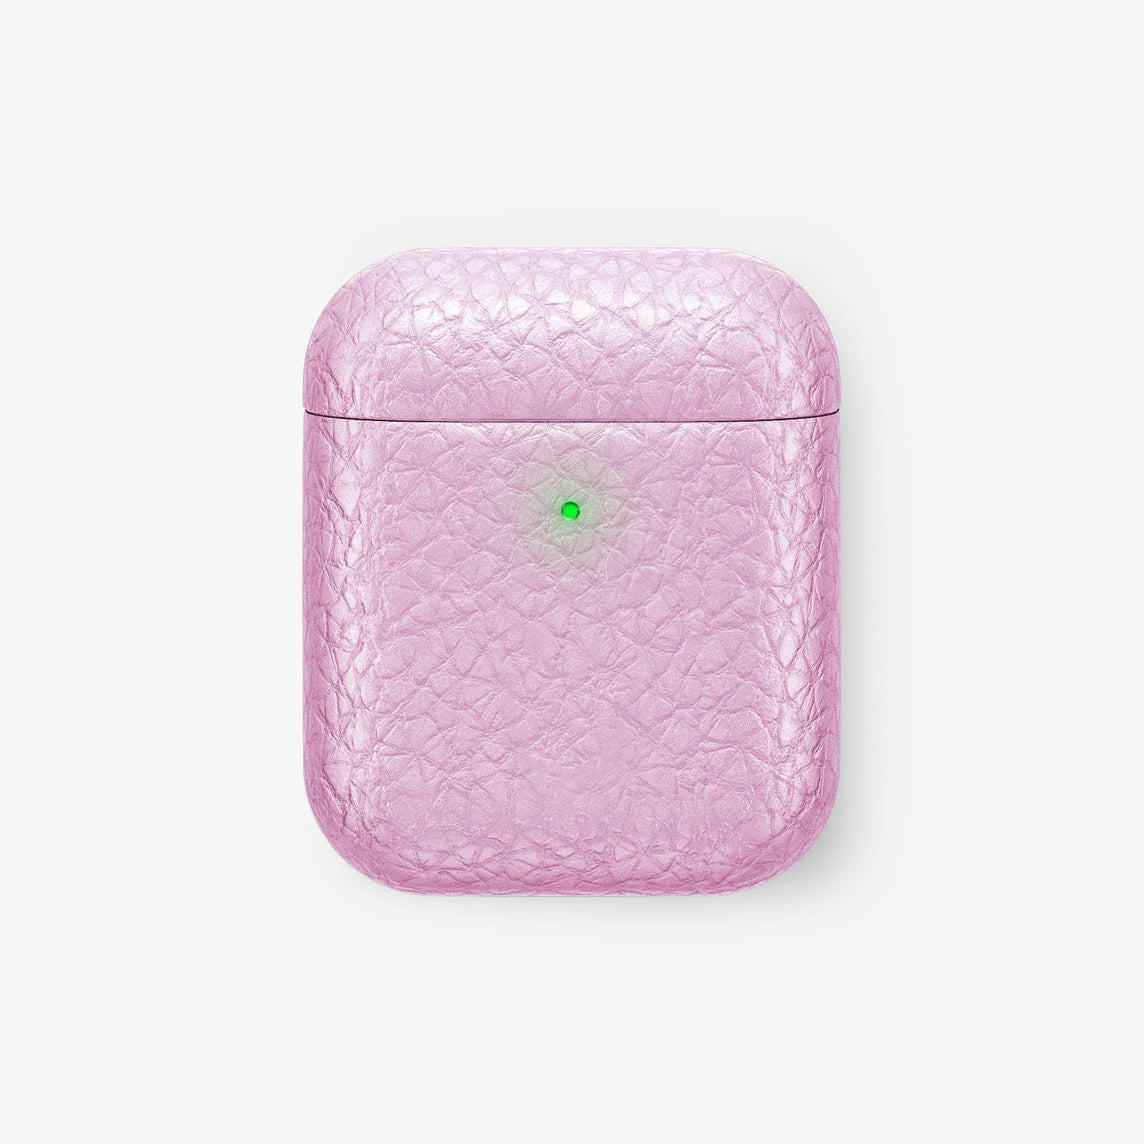 Calfskin [Hadoro AirPods] [model:airpods-with-w-charging] [colour:pink] [finishing:black] without-personalization